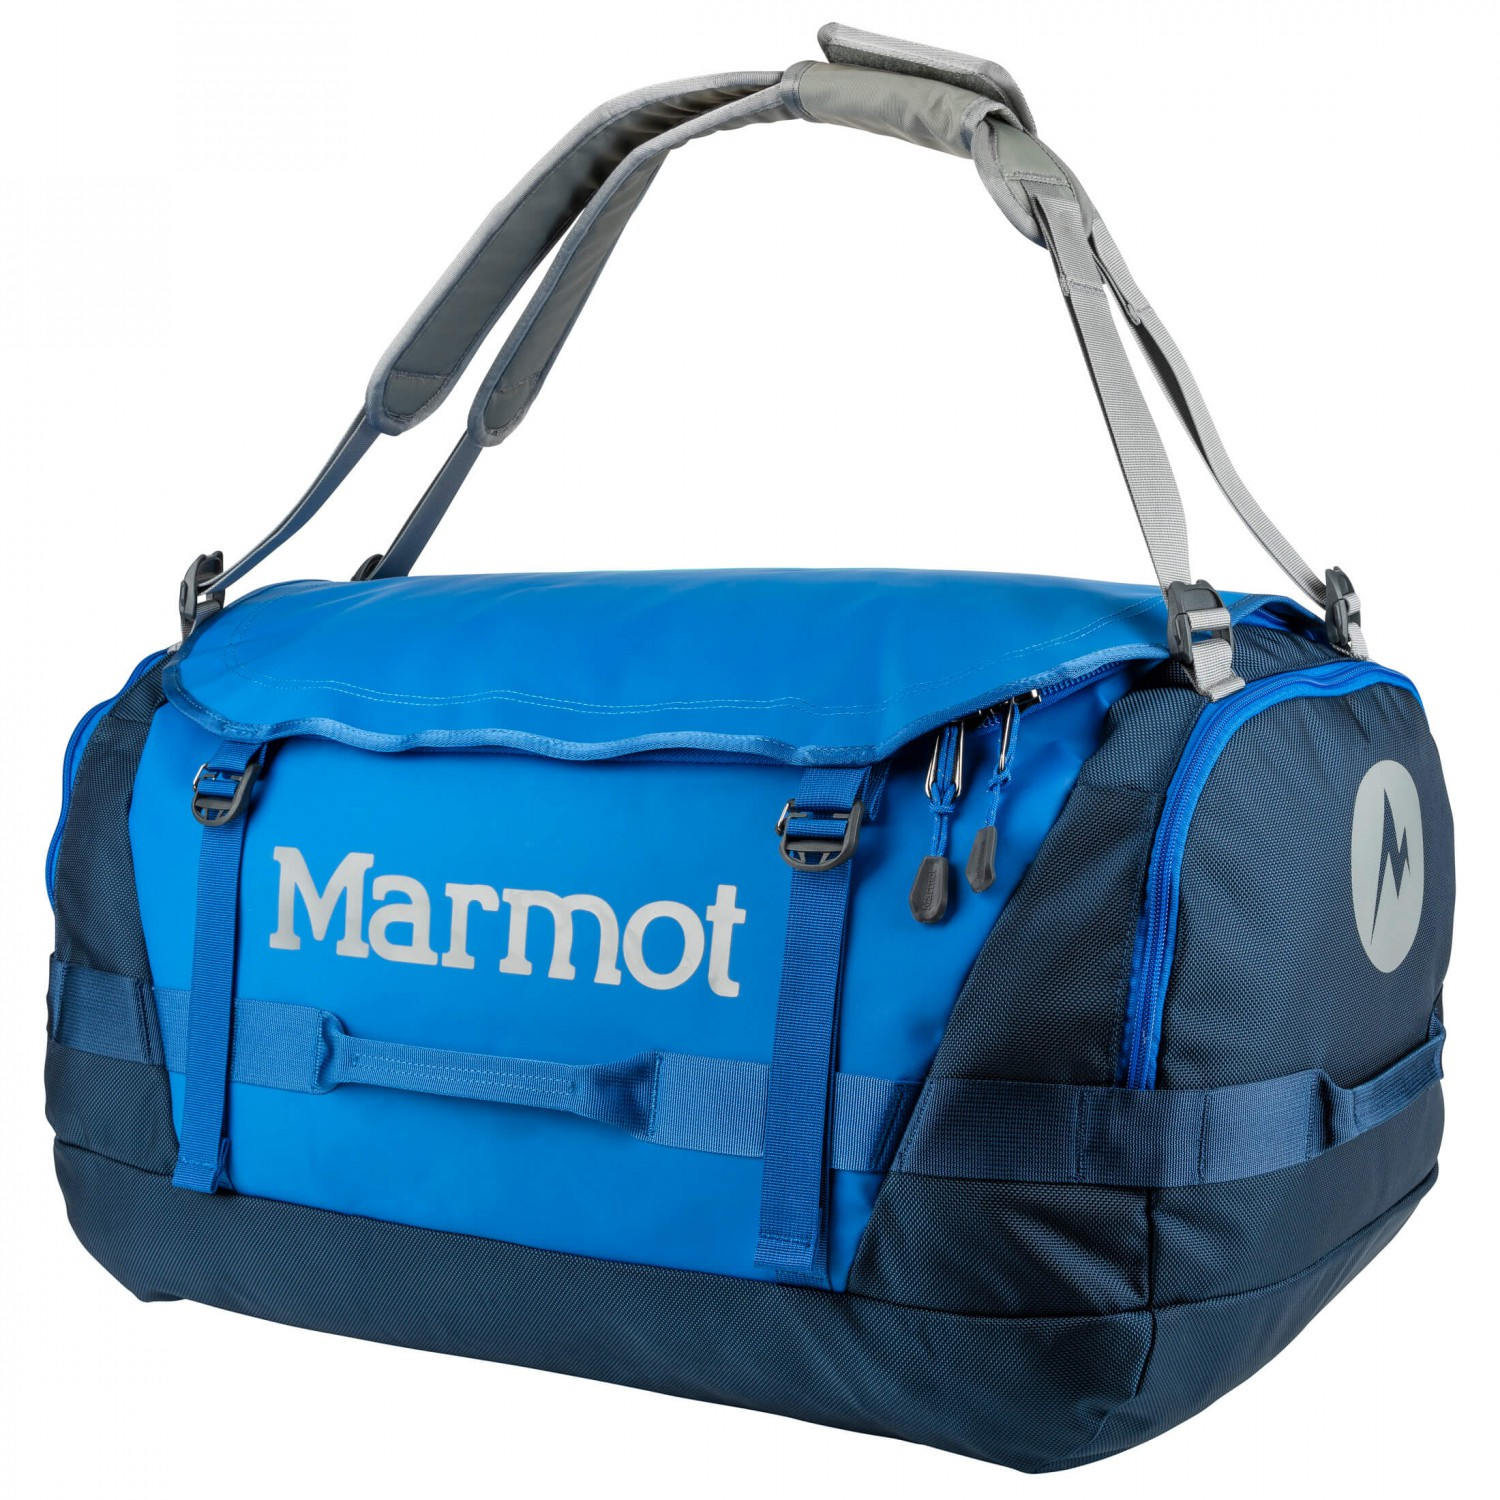 be1be7d73 Marmot Long Hauler Duffel Large - Luggage | Free UK Delivery ...